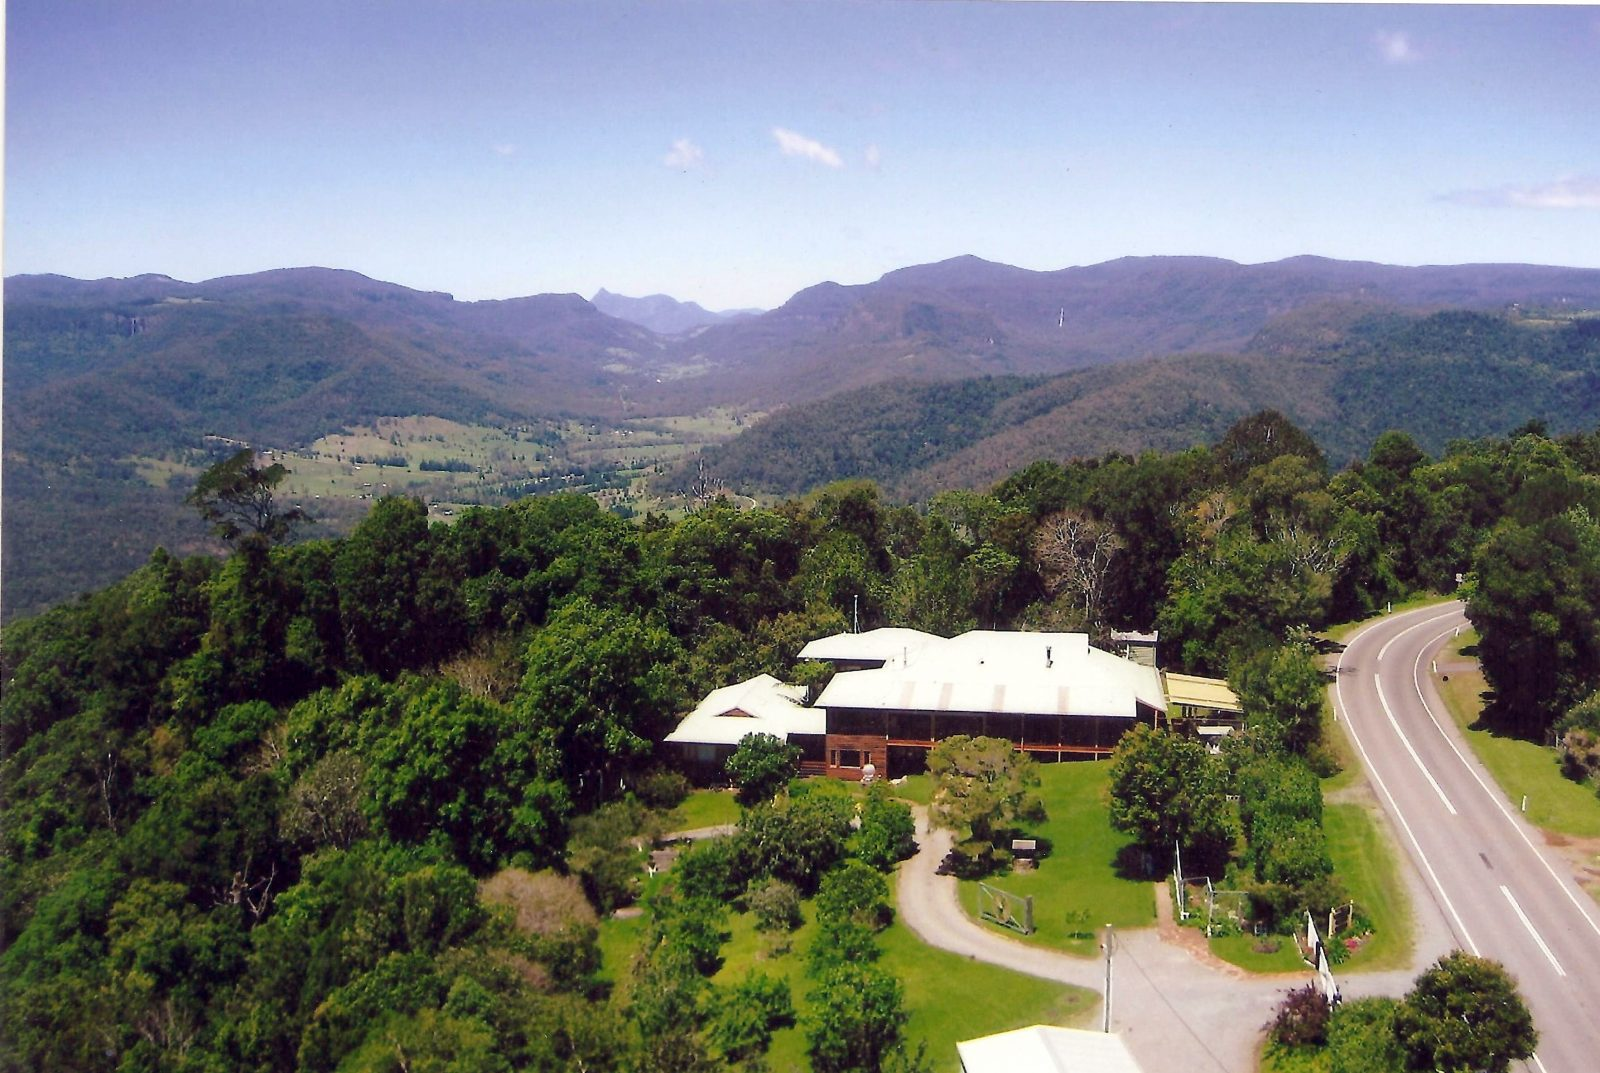 Aerial View of Mystery Mountain house looking south to Mount Warning volcano